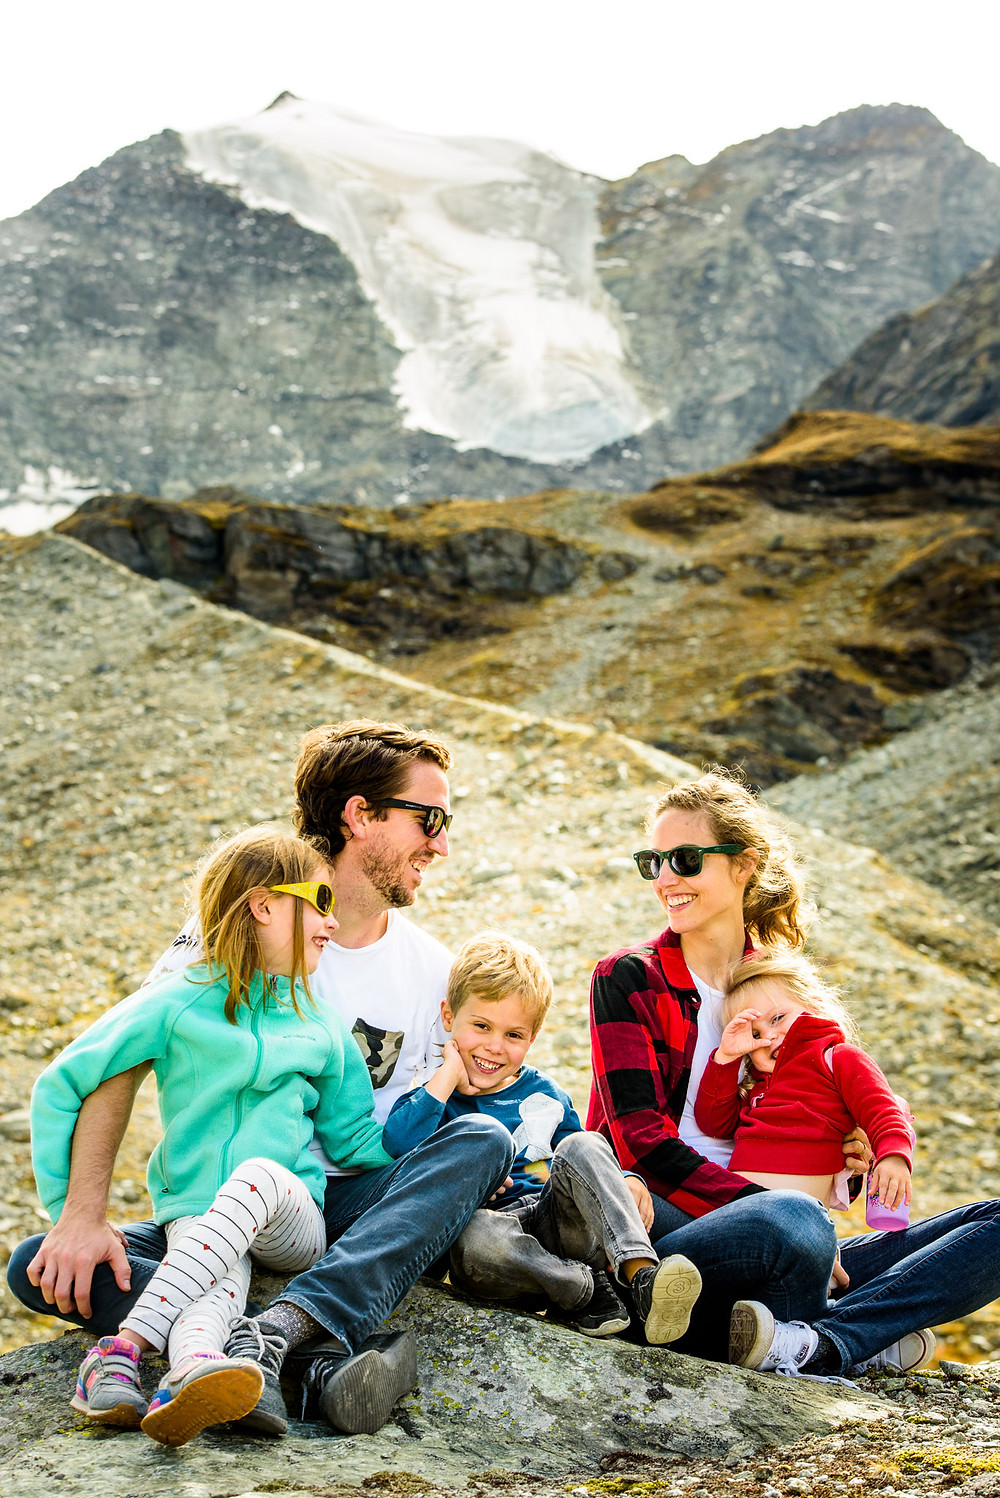 Our family in the mountains in front of a glacier